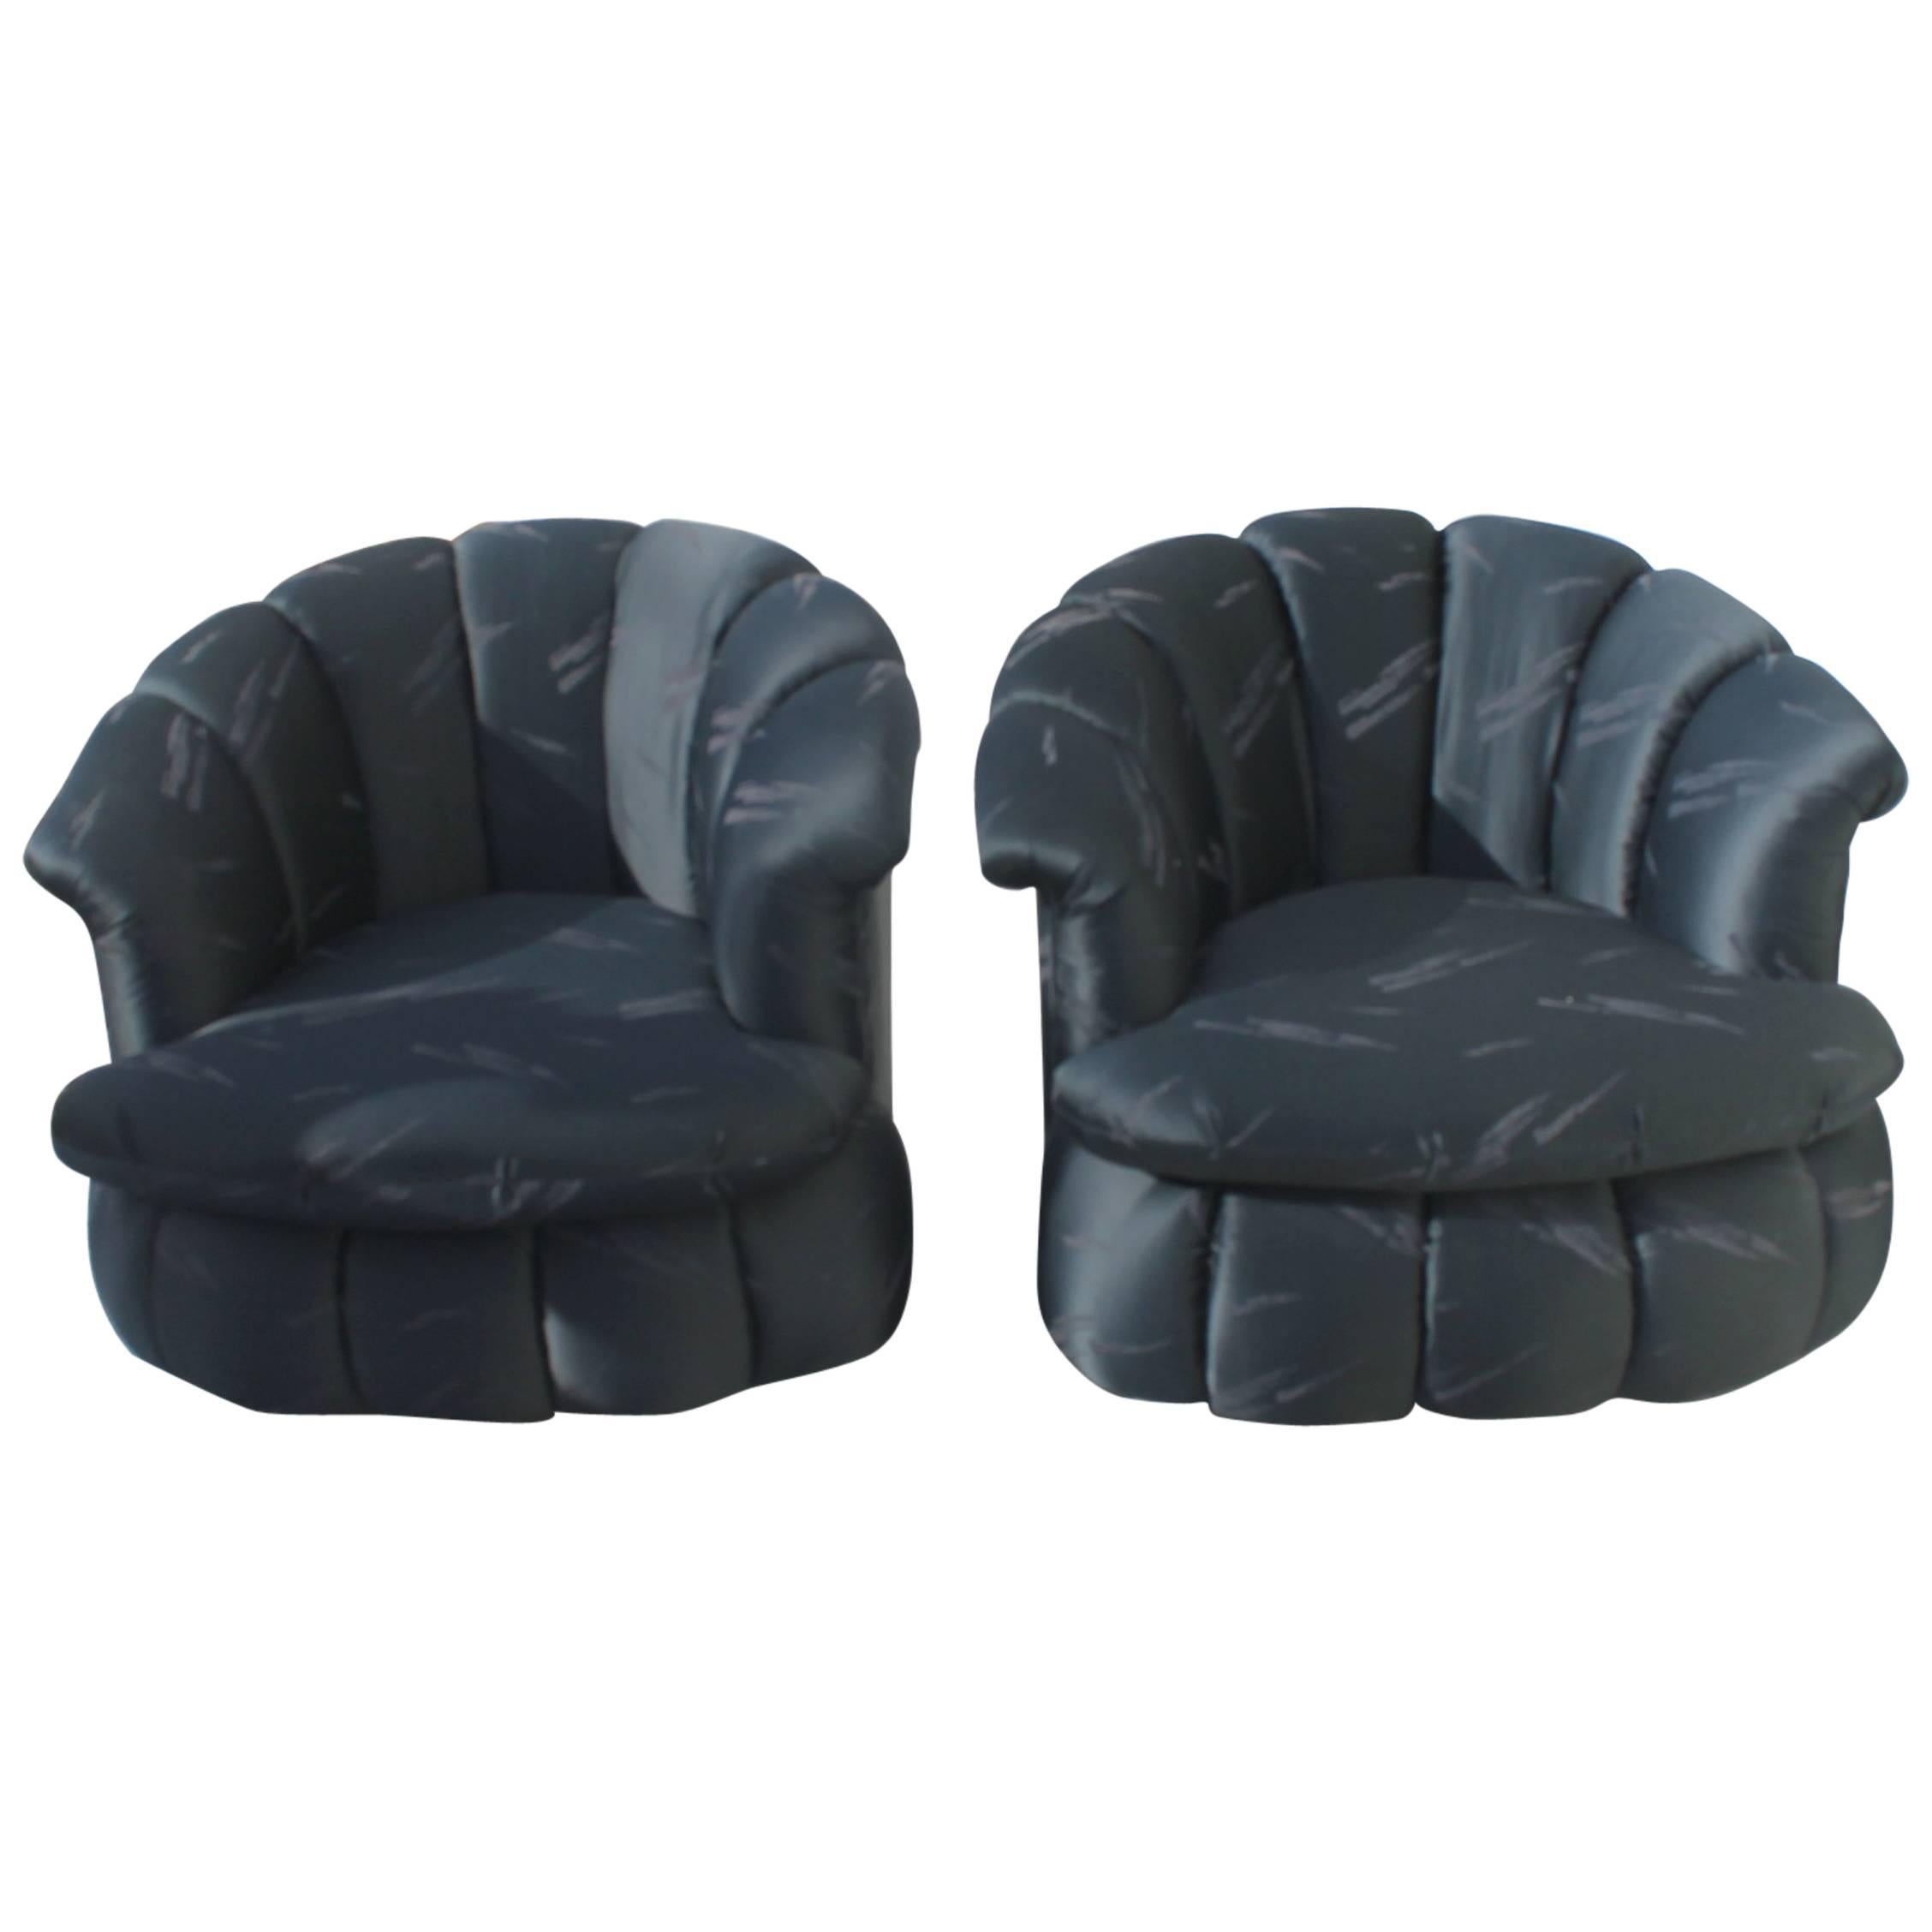 Swivel Chairs Pair of Vintage Tufted Tub Barrel Arm Pouf Hollywood Regency